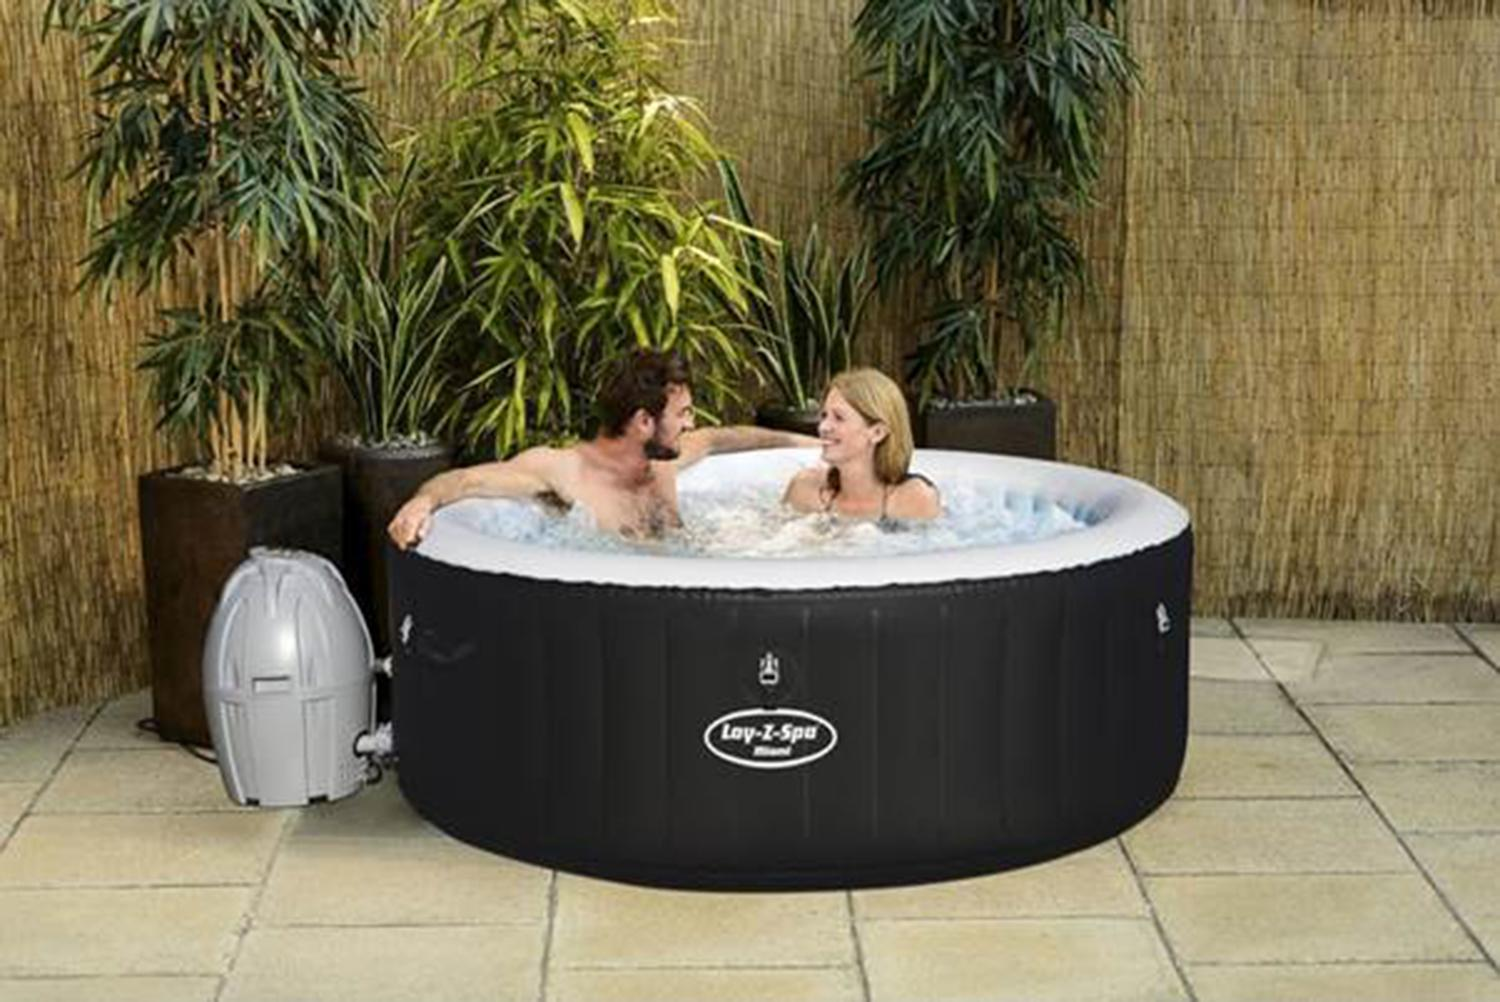 Jacuzzi Pool Argos B M Is Selling An Inflatable Hot Tub And It S Cheaper Than